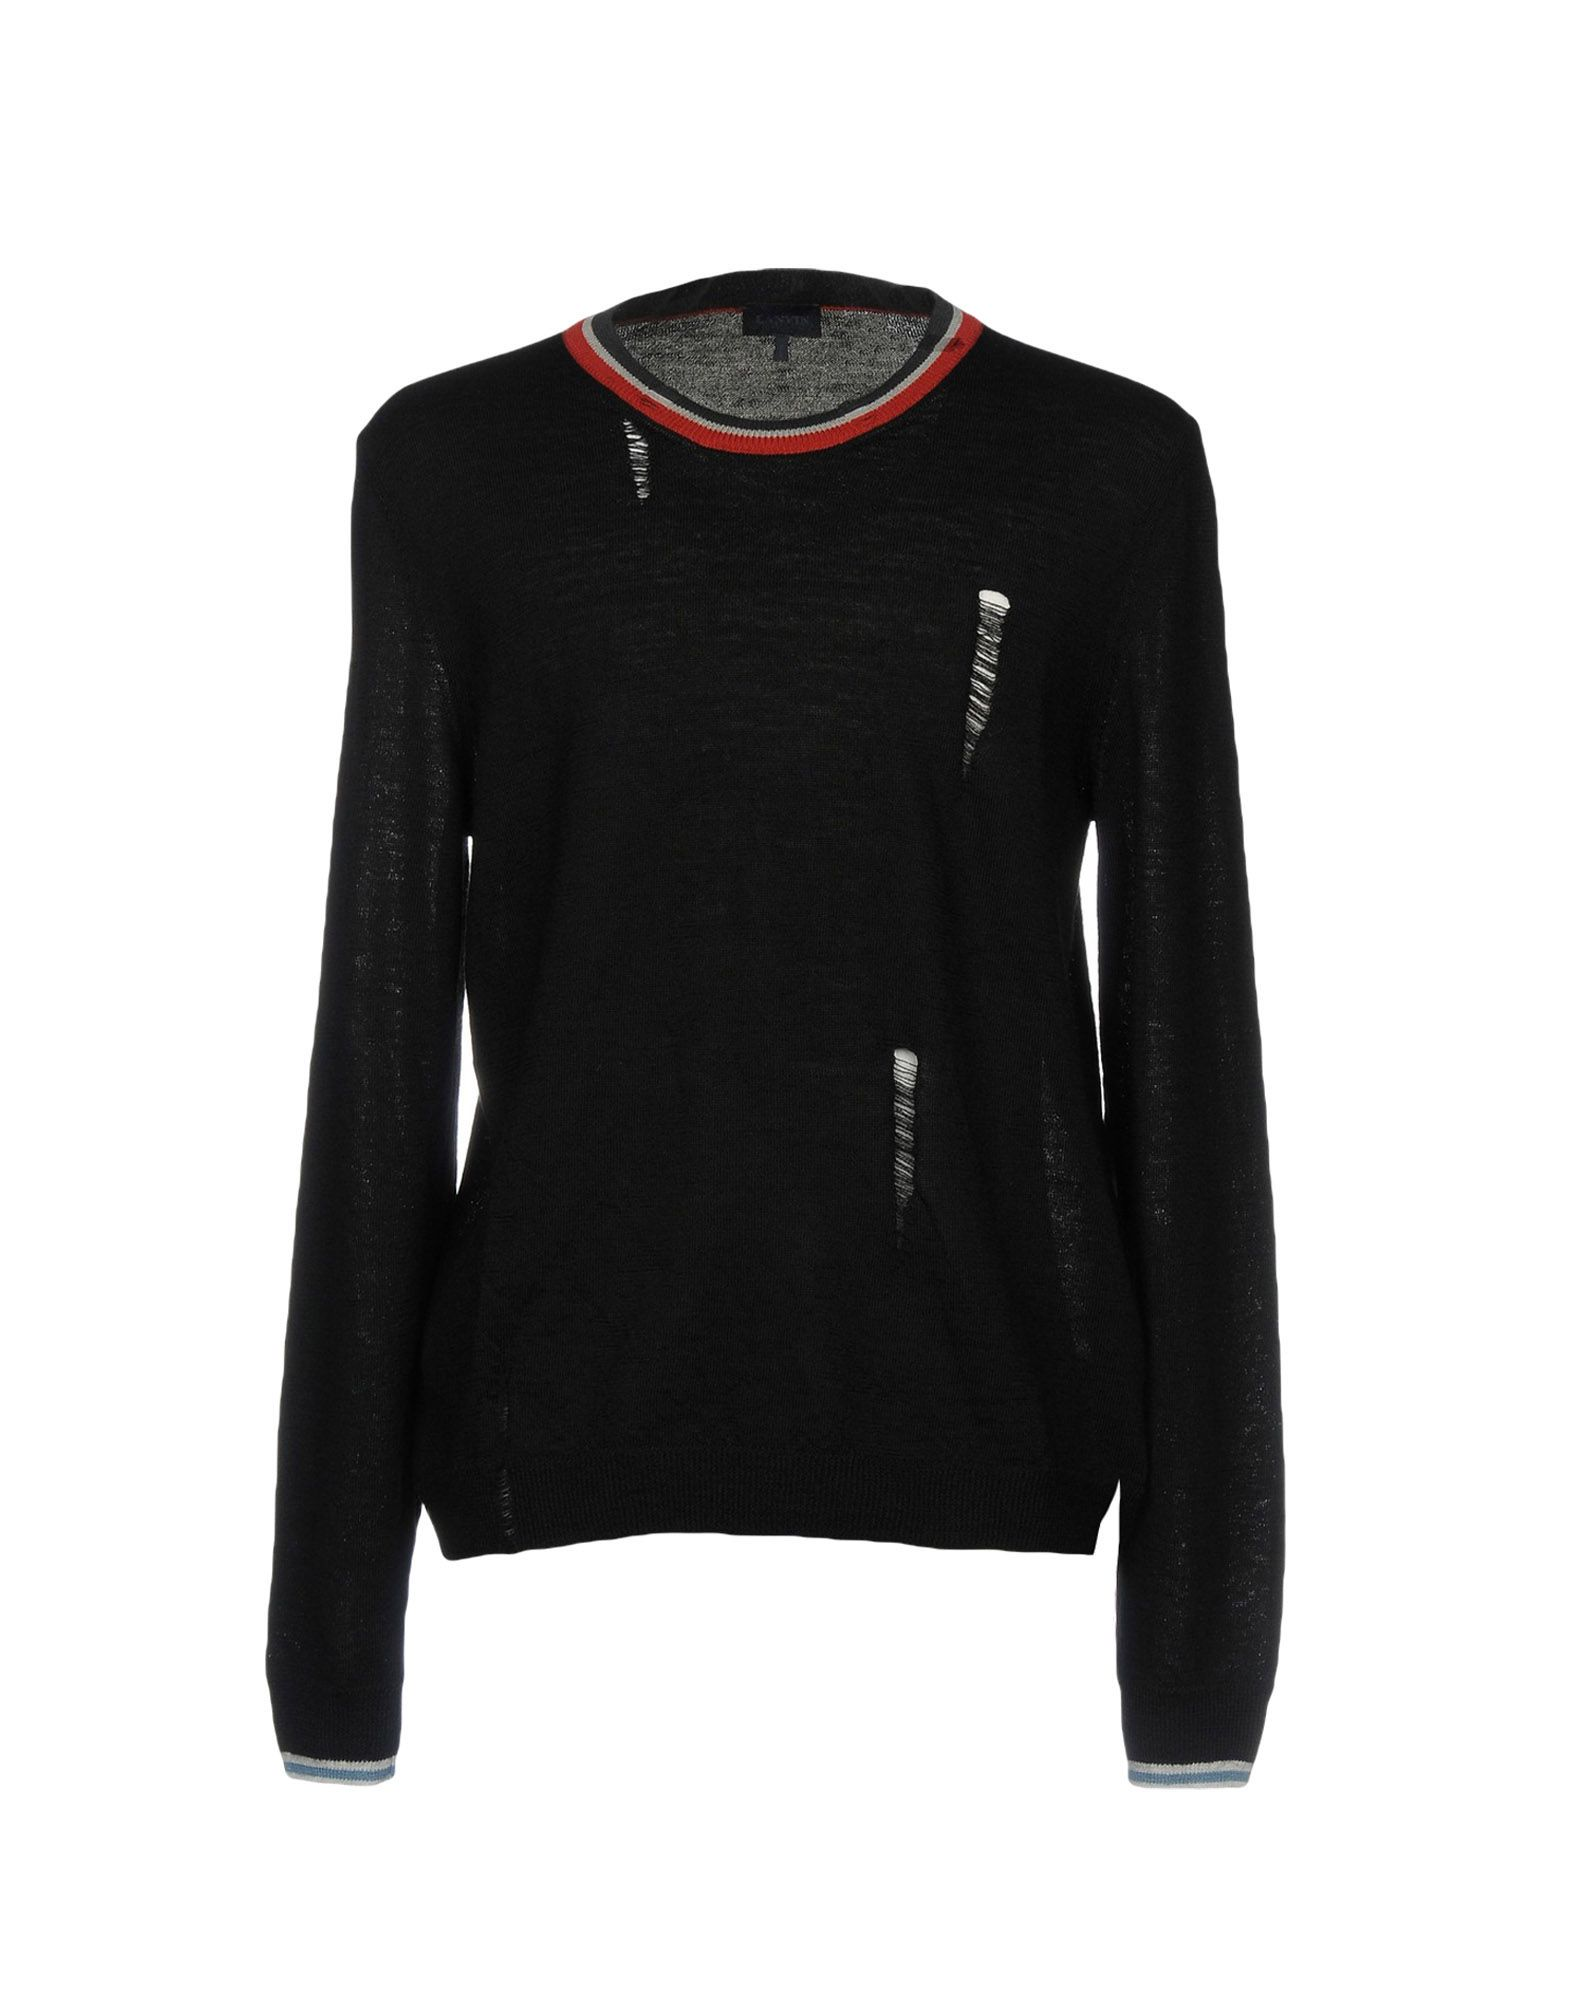 LANVIN Свитер портмоне mano business 19850 19850 black